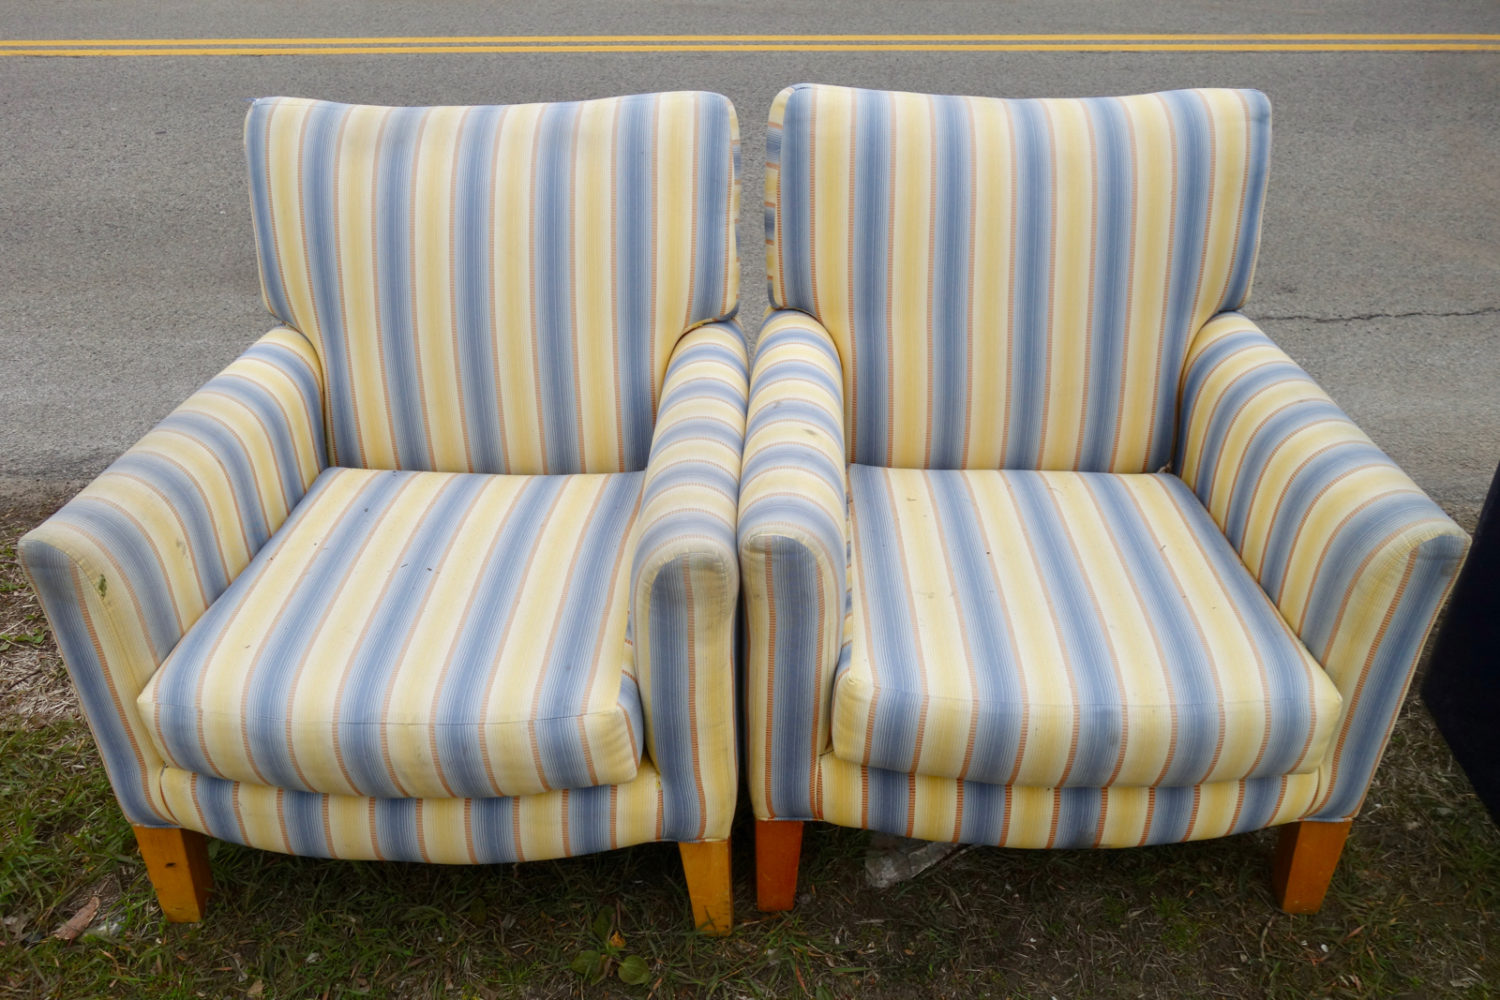 Two Blue striped chairs at the curb in Rochester, New York